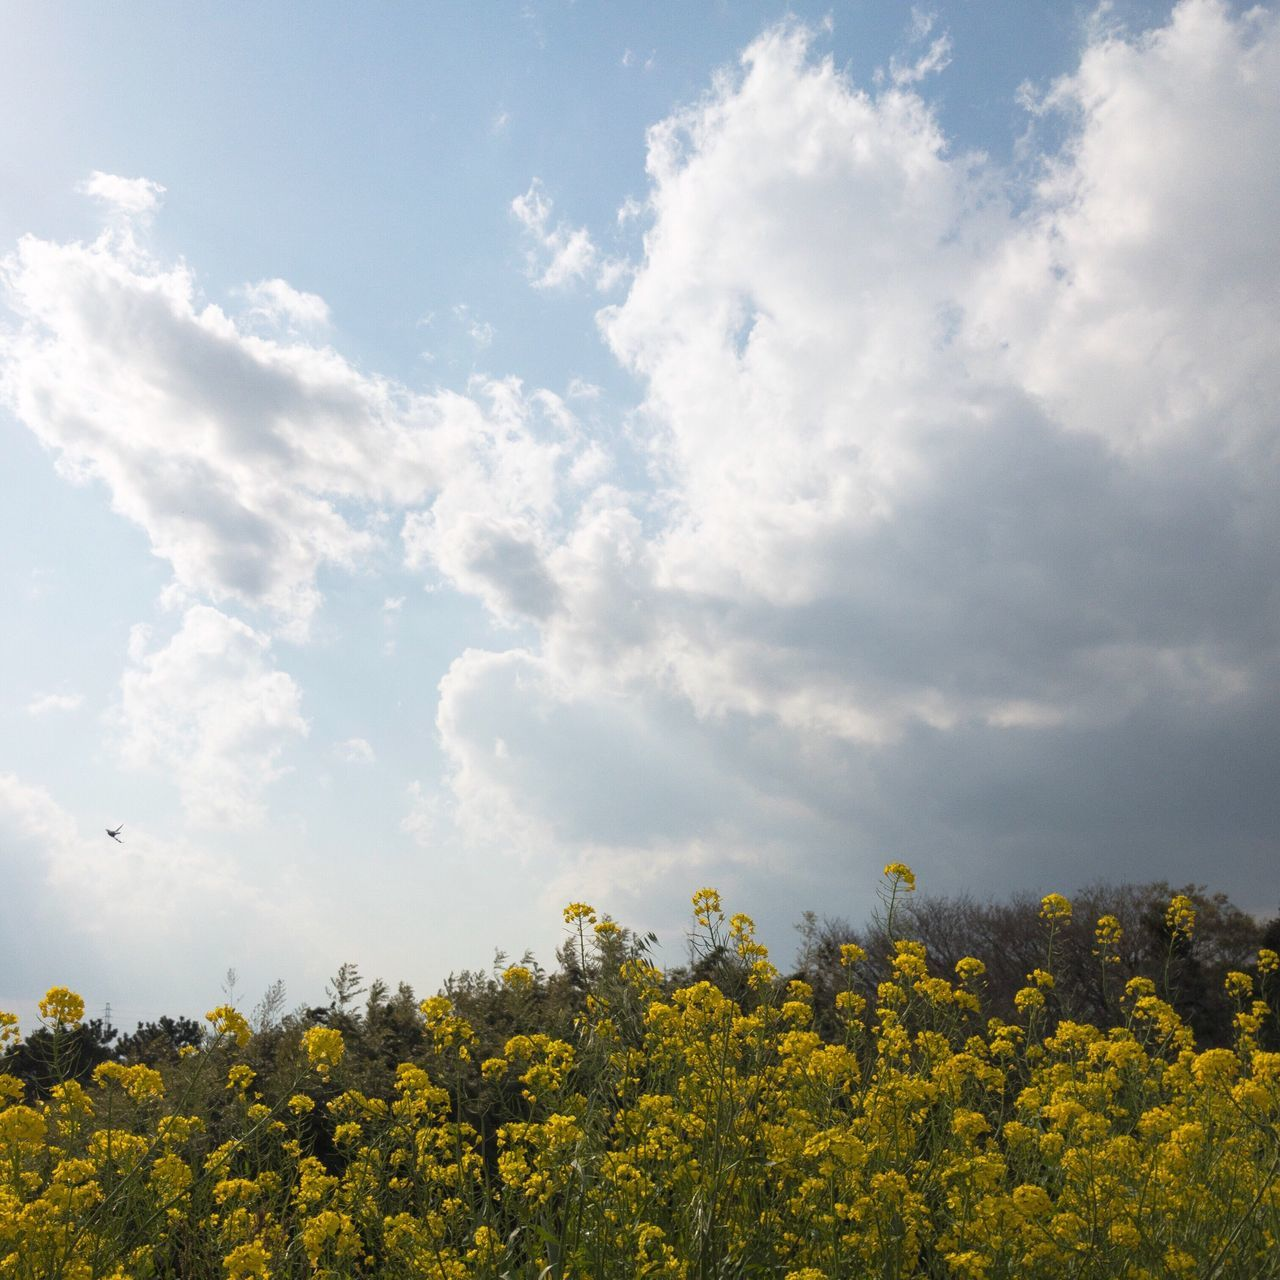 Low Angle View Of Oilseed Rape Field Against Sky